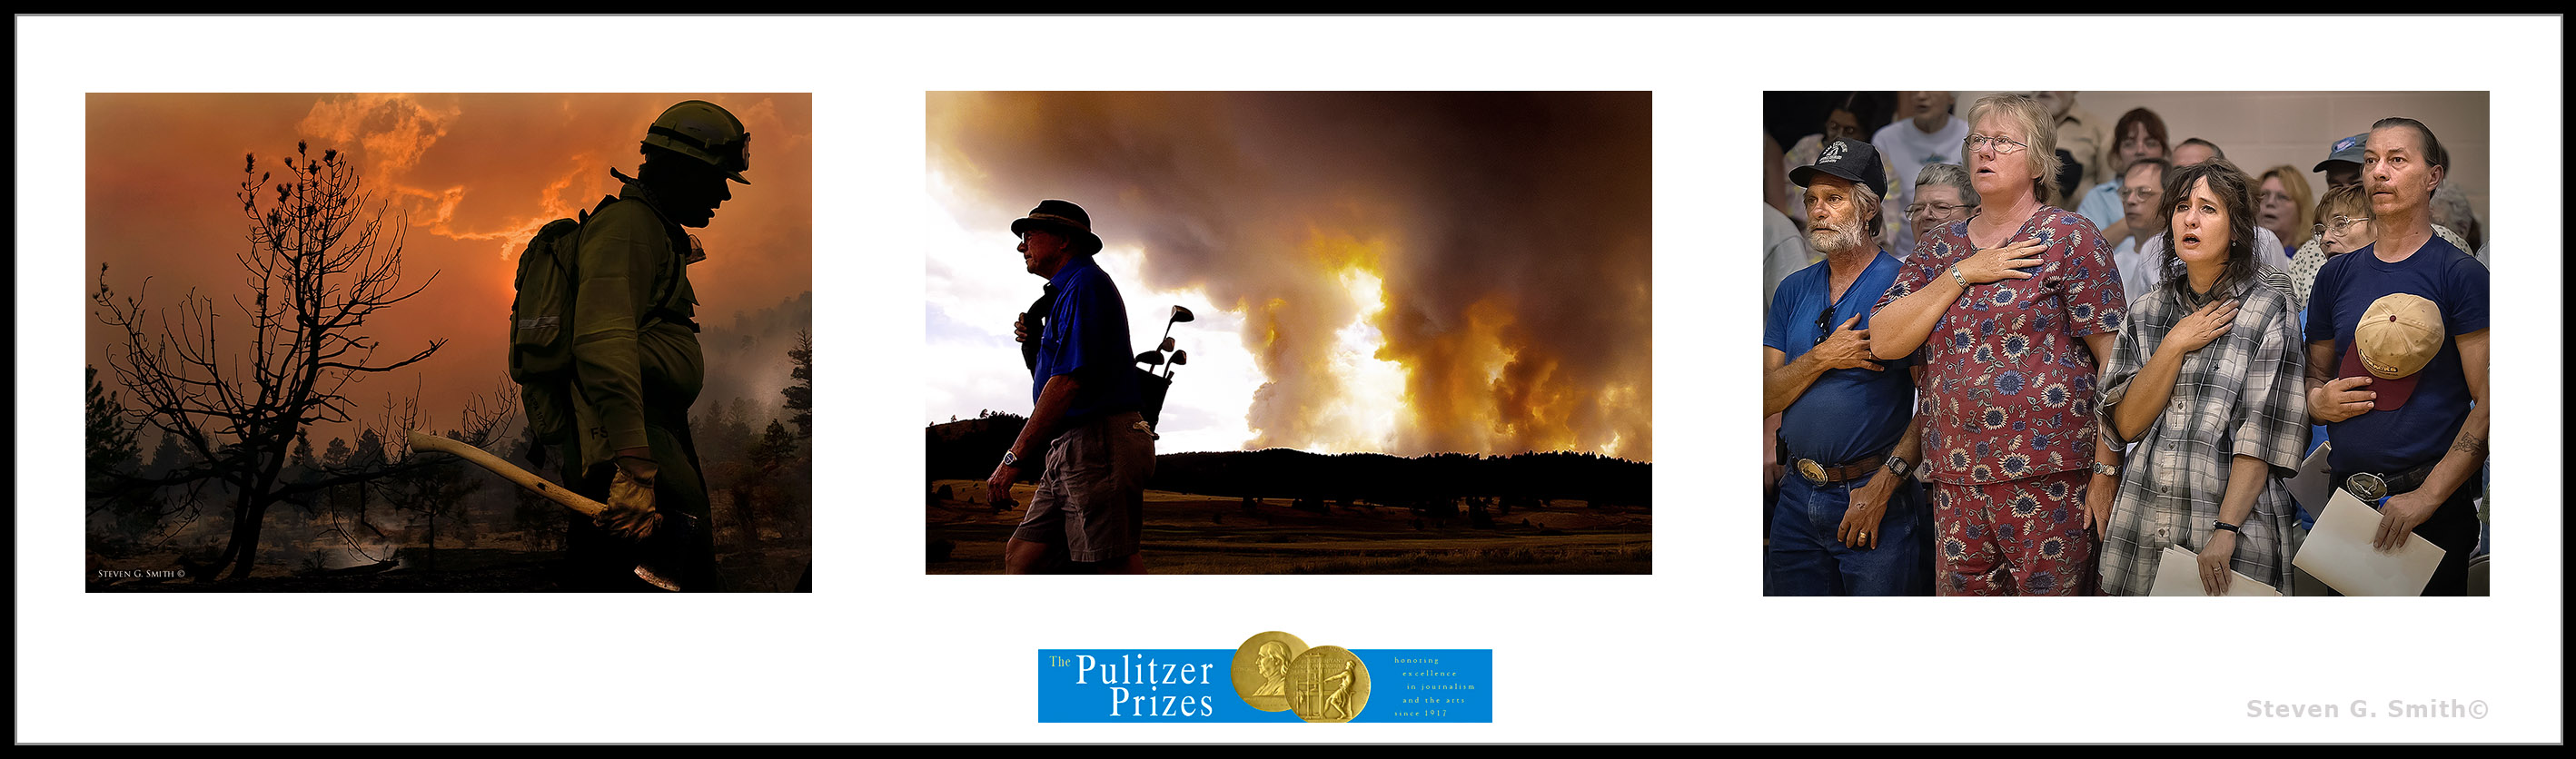 steven g smith department of journalism winner of the pulitzer prize 2003 shared award photo essay print and multimedia